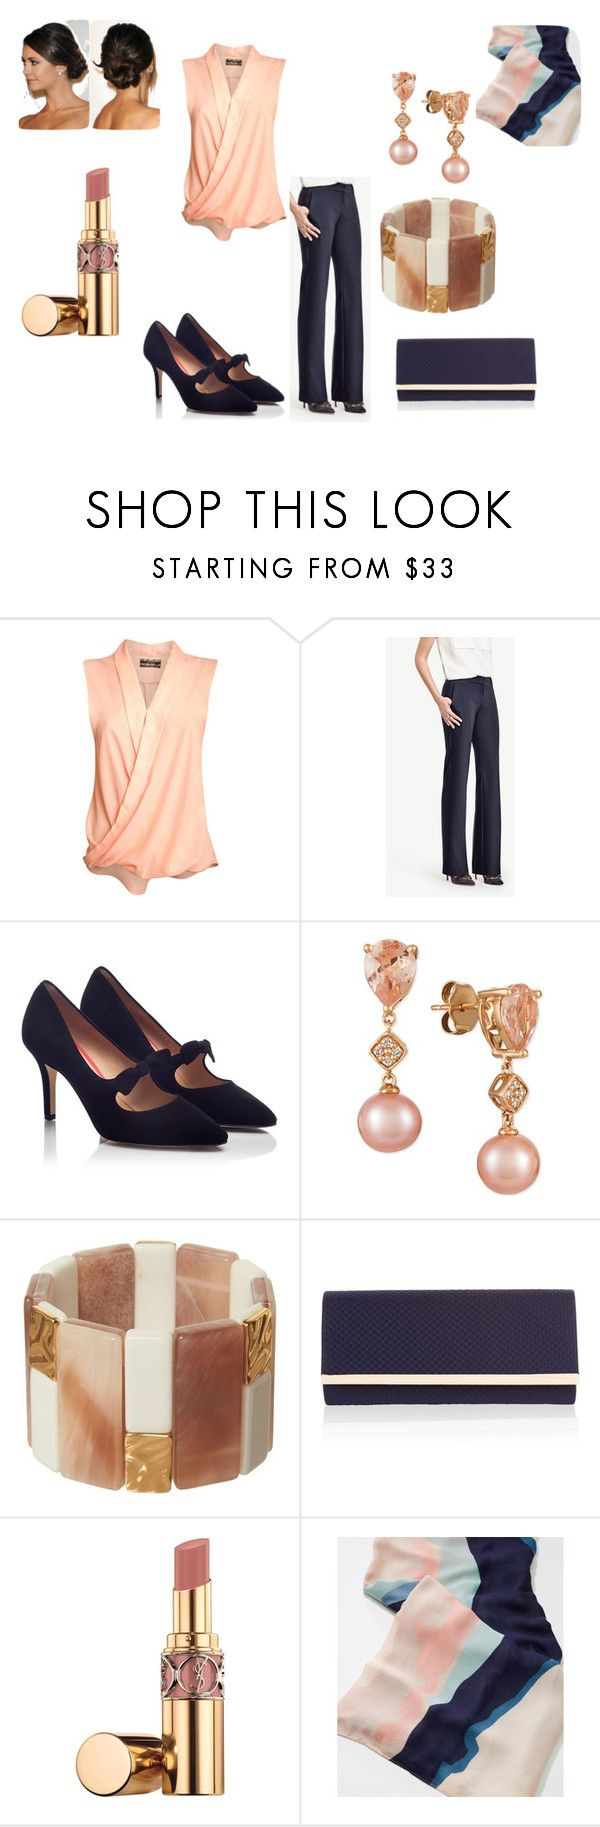 """""""Untitled #54"""" by jrrenner76 ❤ liked on Polyvore featuring Pilot, Ann Taylor, PAS DE ROUGE, LE VIAN, Phase Eight, Accessorize, Yves Saint Laurent, LOFT, cocktails and happyhour"""